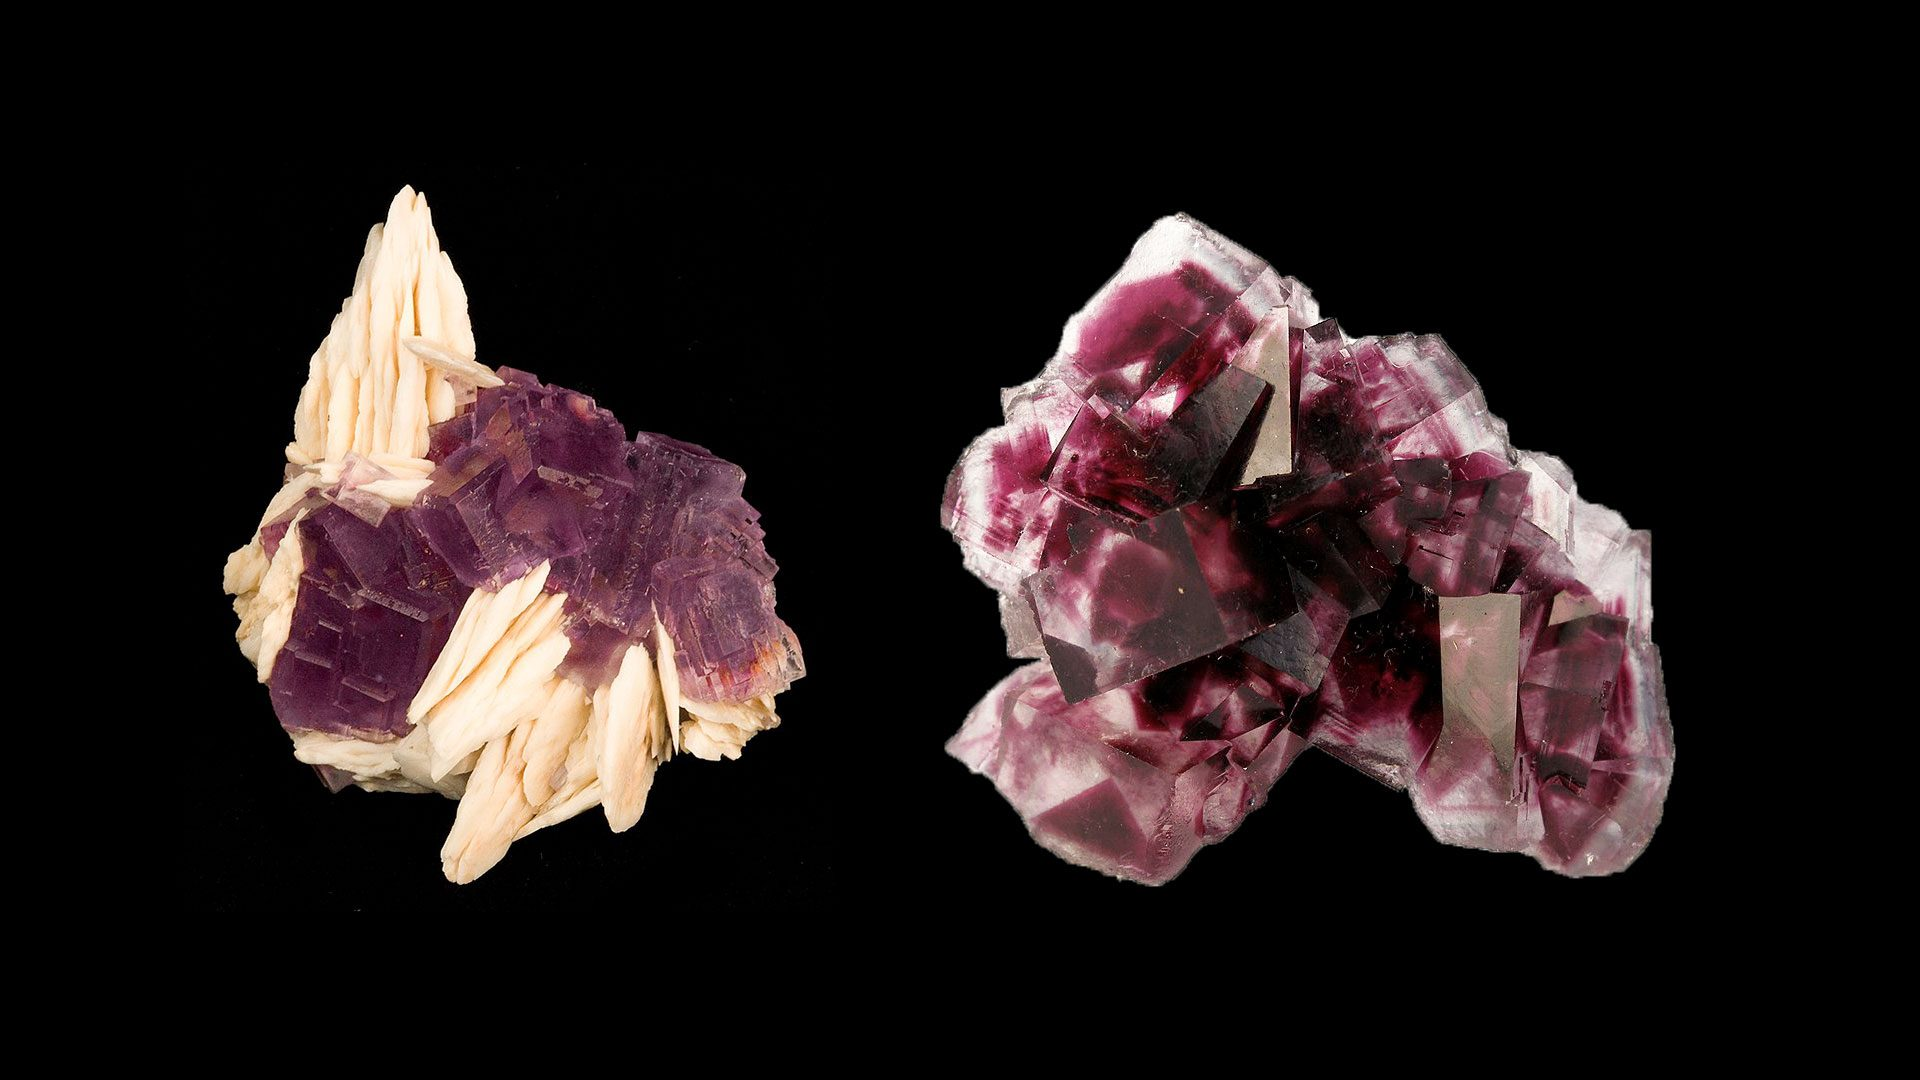 Pink Fluorite Crystal Specimens - Original Photographs by Rob Lavinsky, iRocks.com